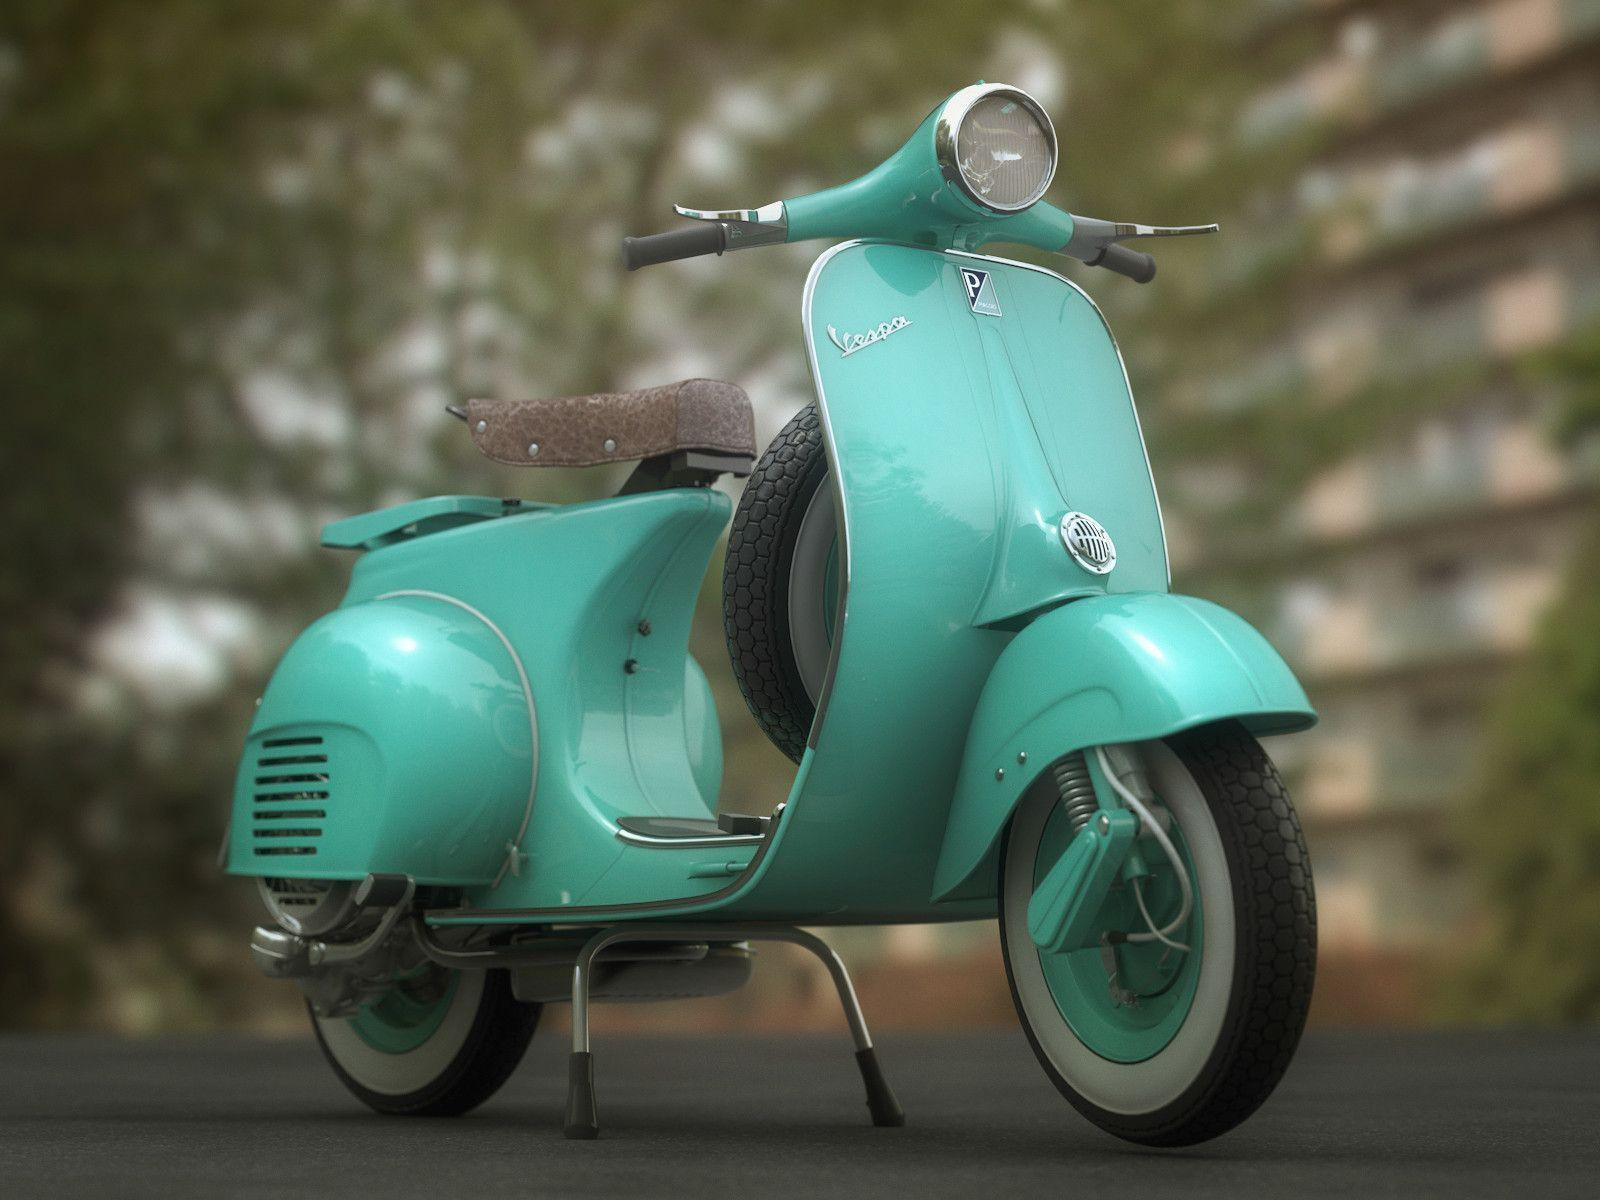 Classic Vespa Wallpapers HD Wallpapers